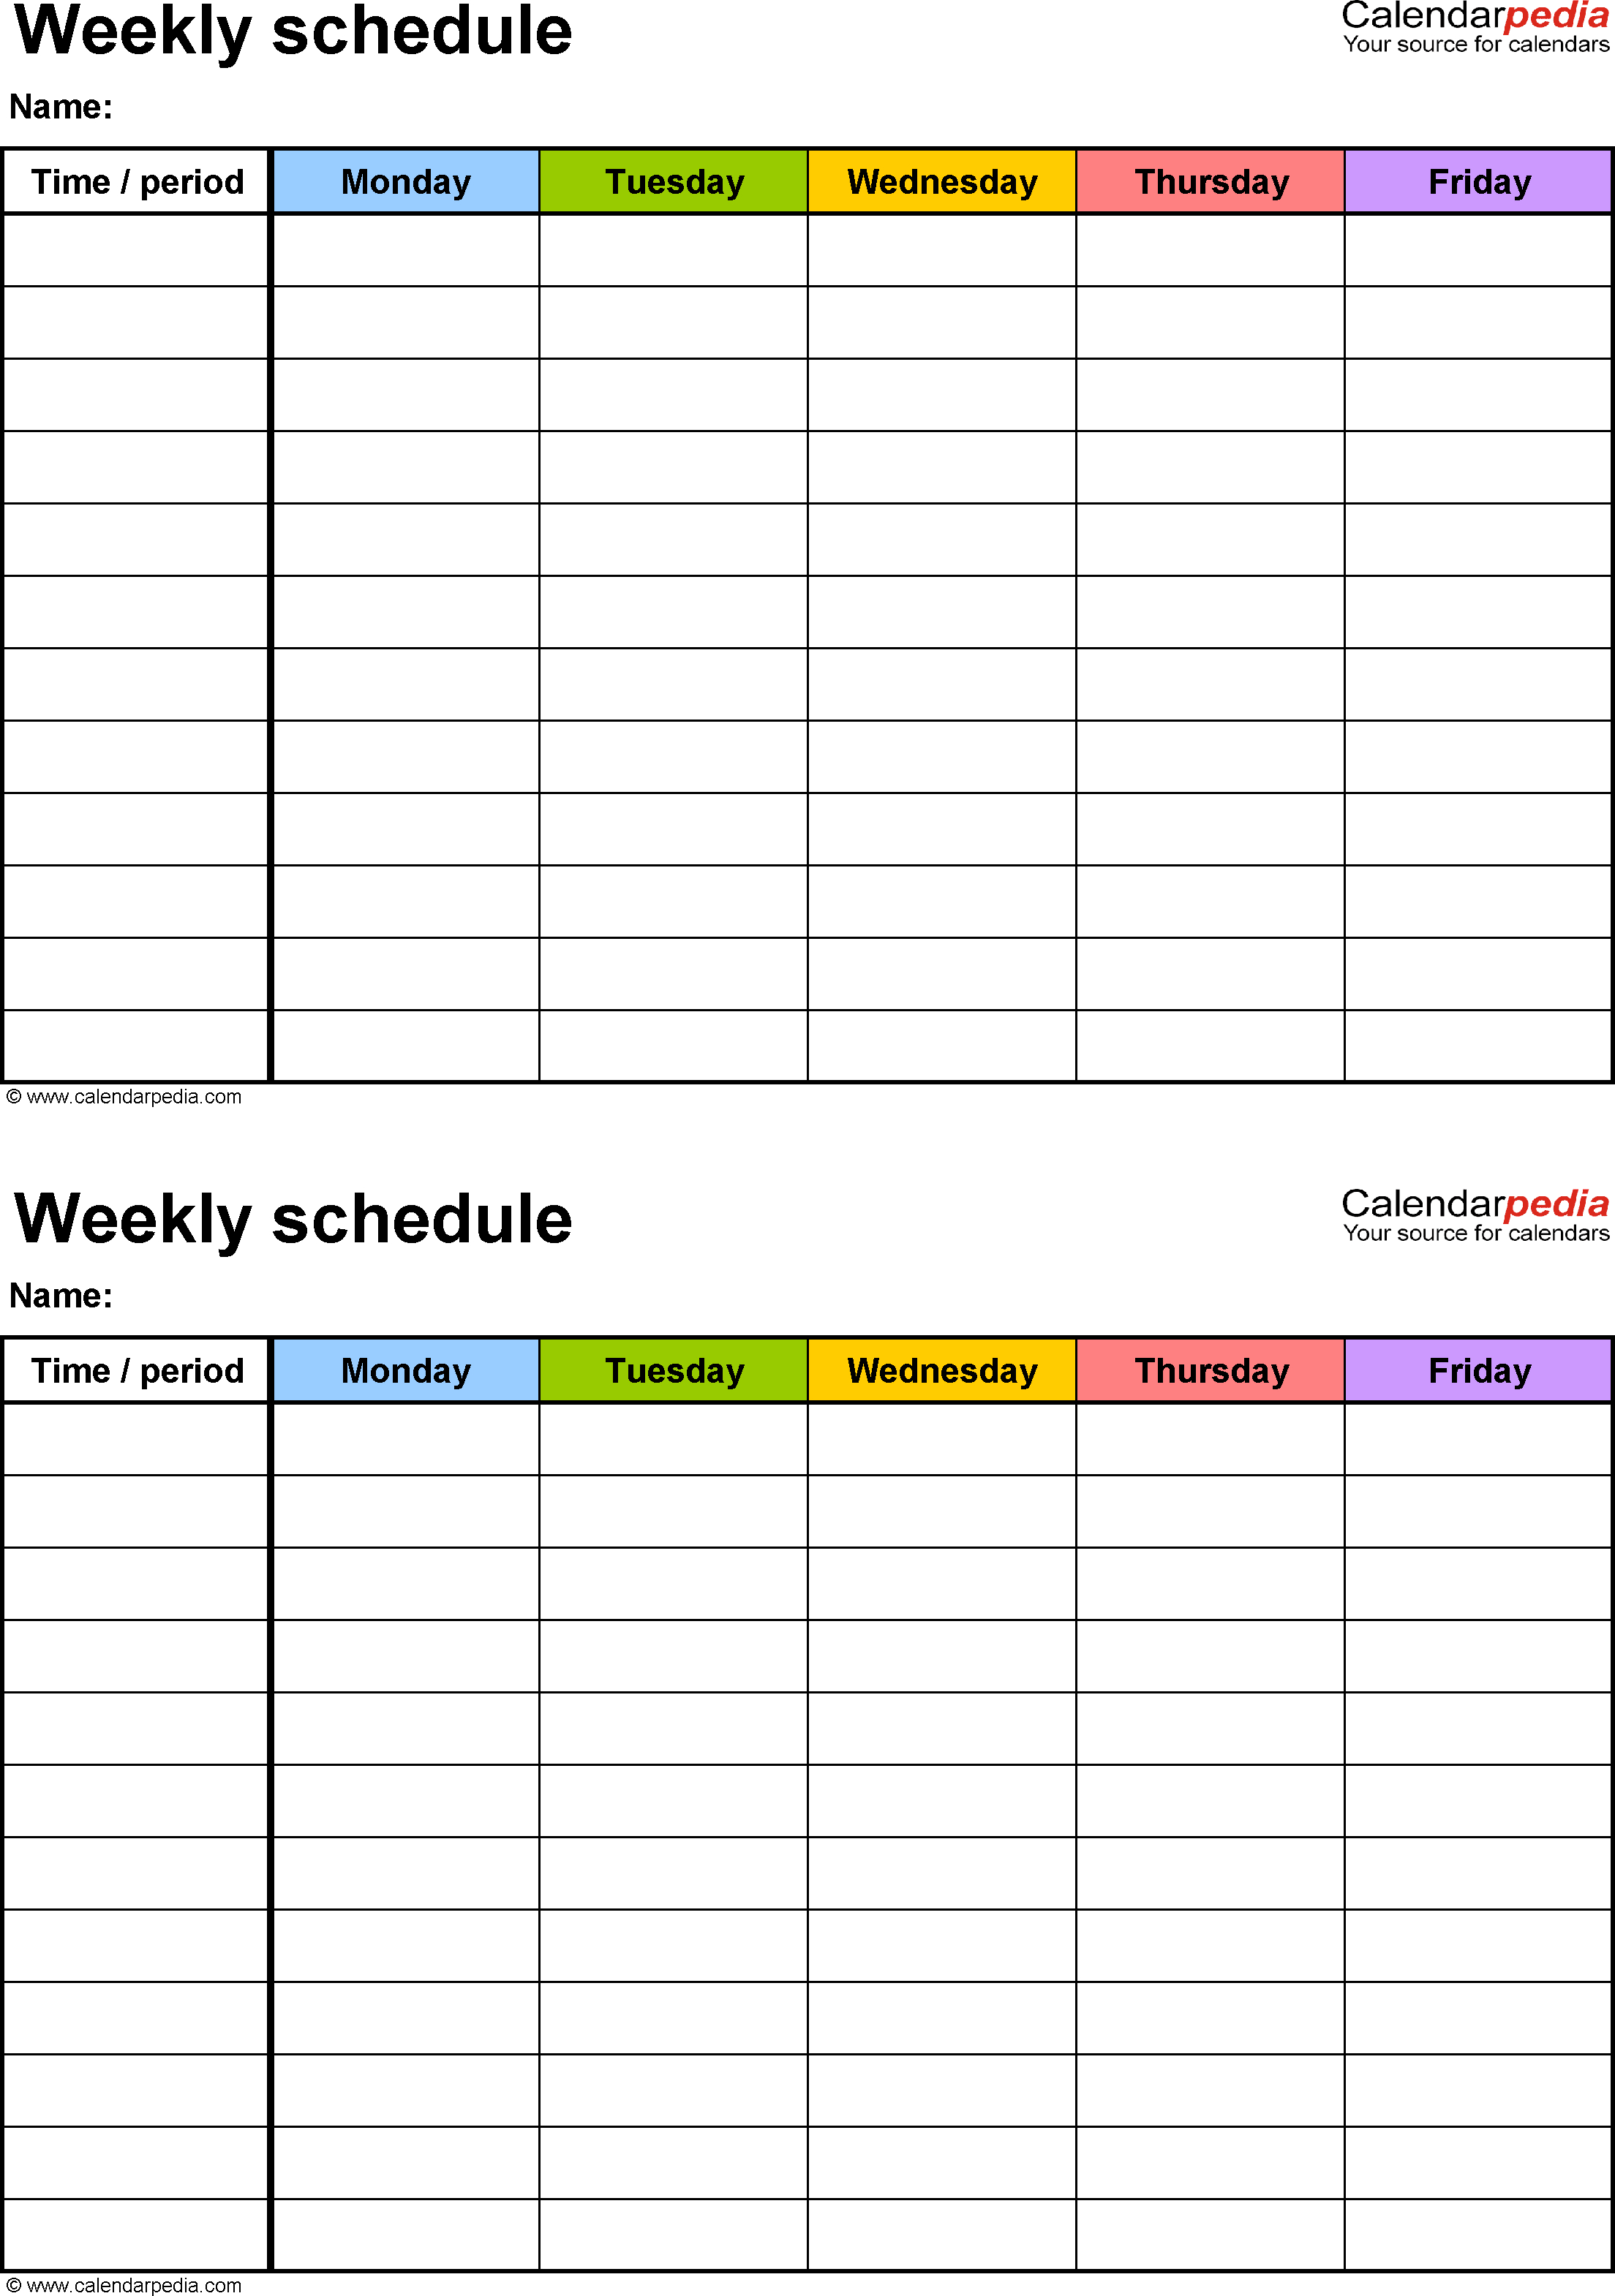 Free Weekly Schedule Templates For Word - 18 Templates in Blank 7 Day Week Calendar